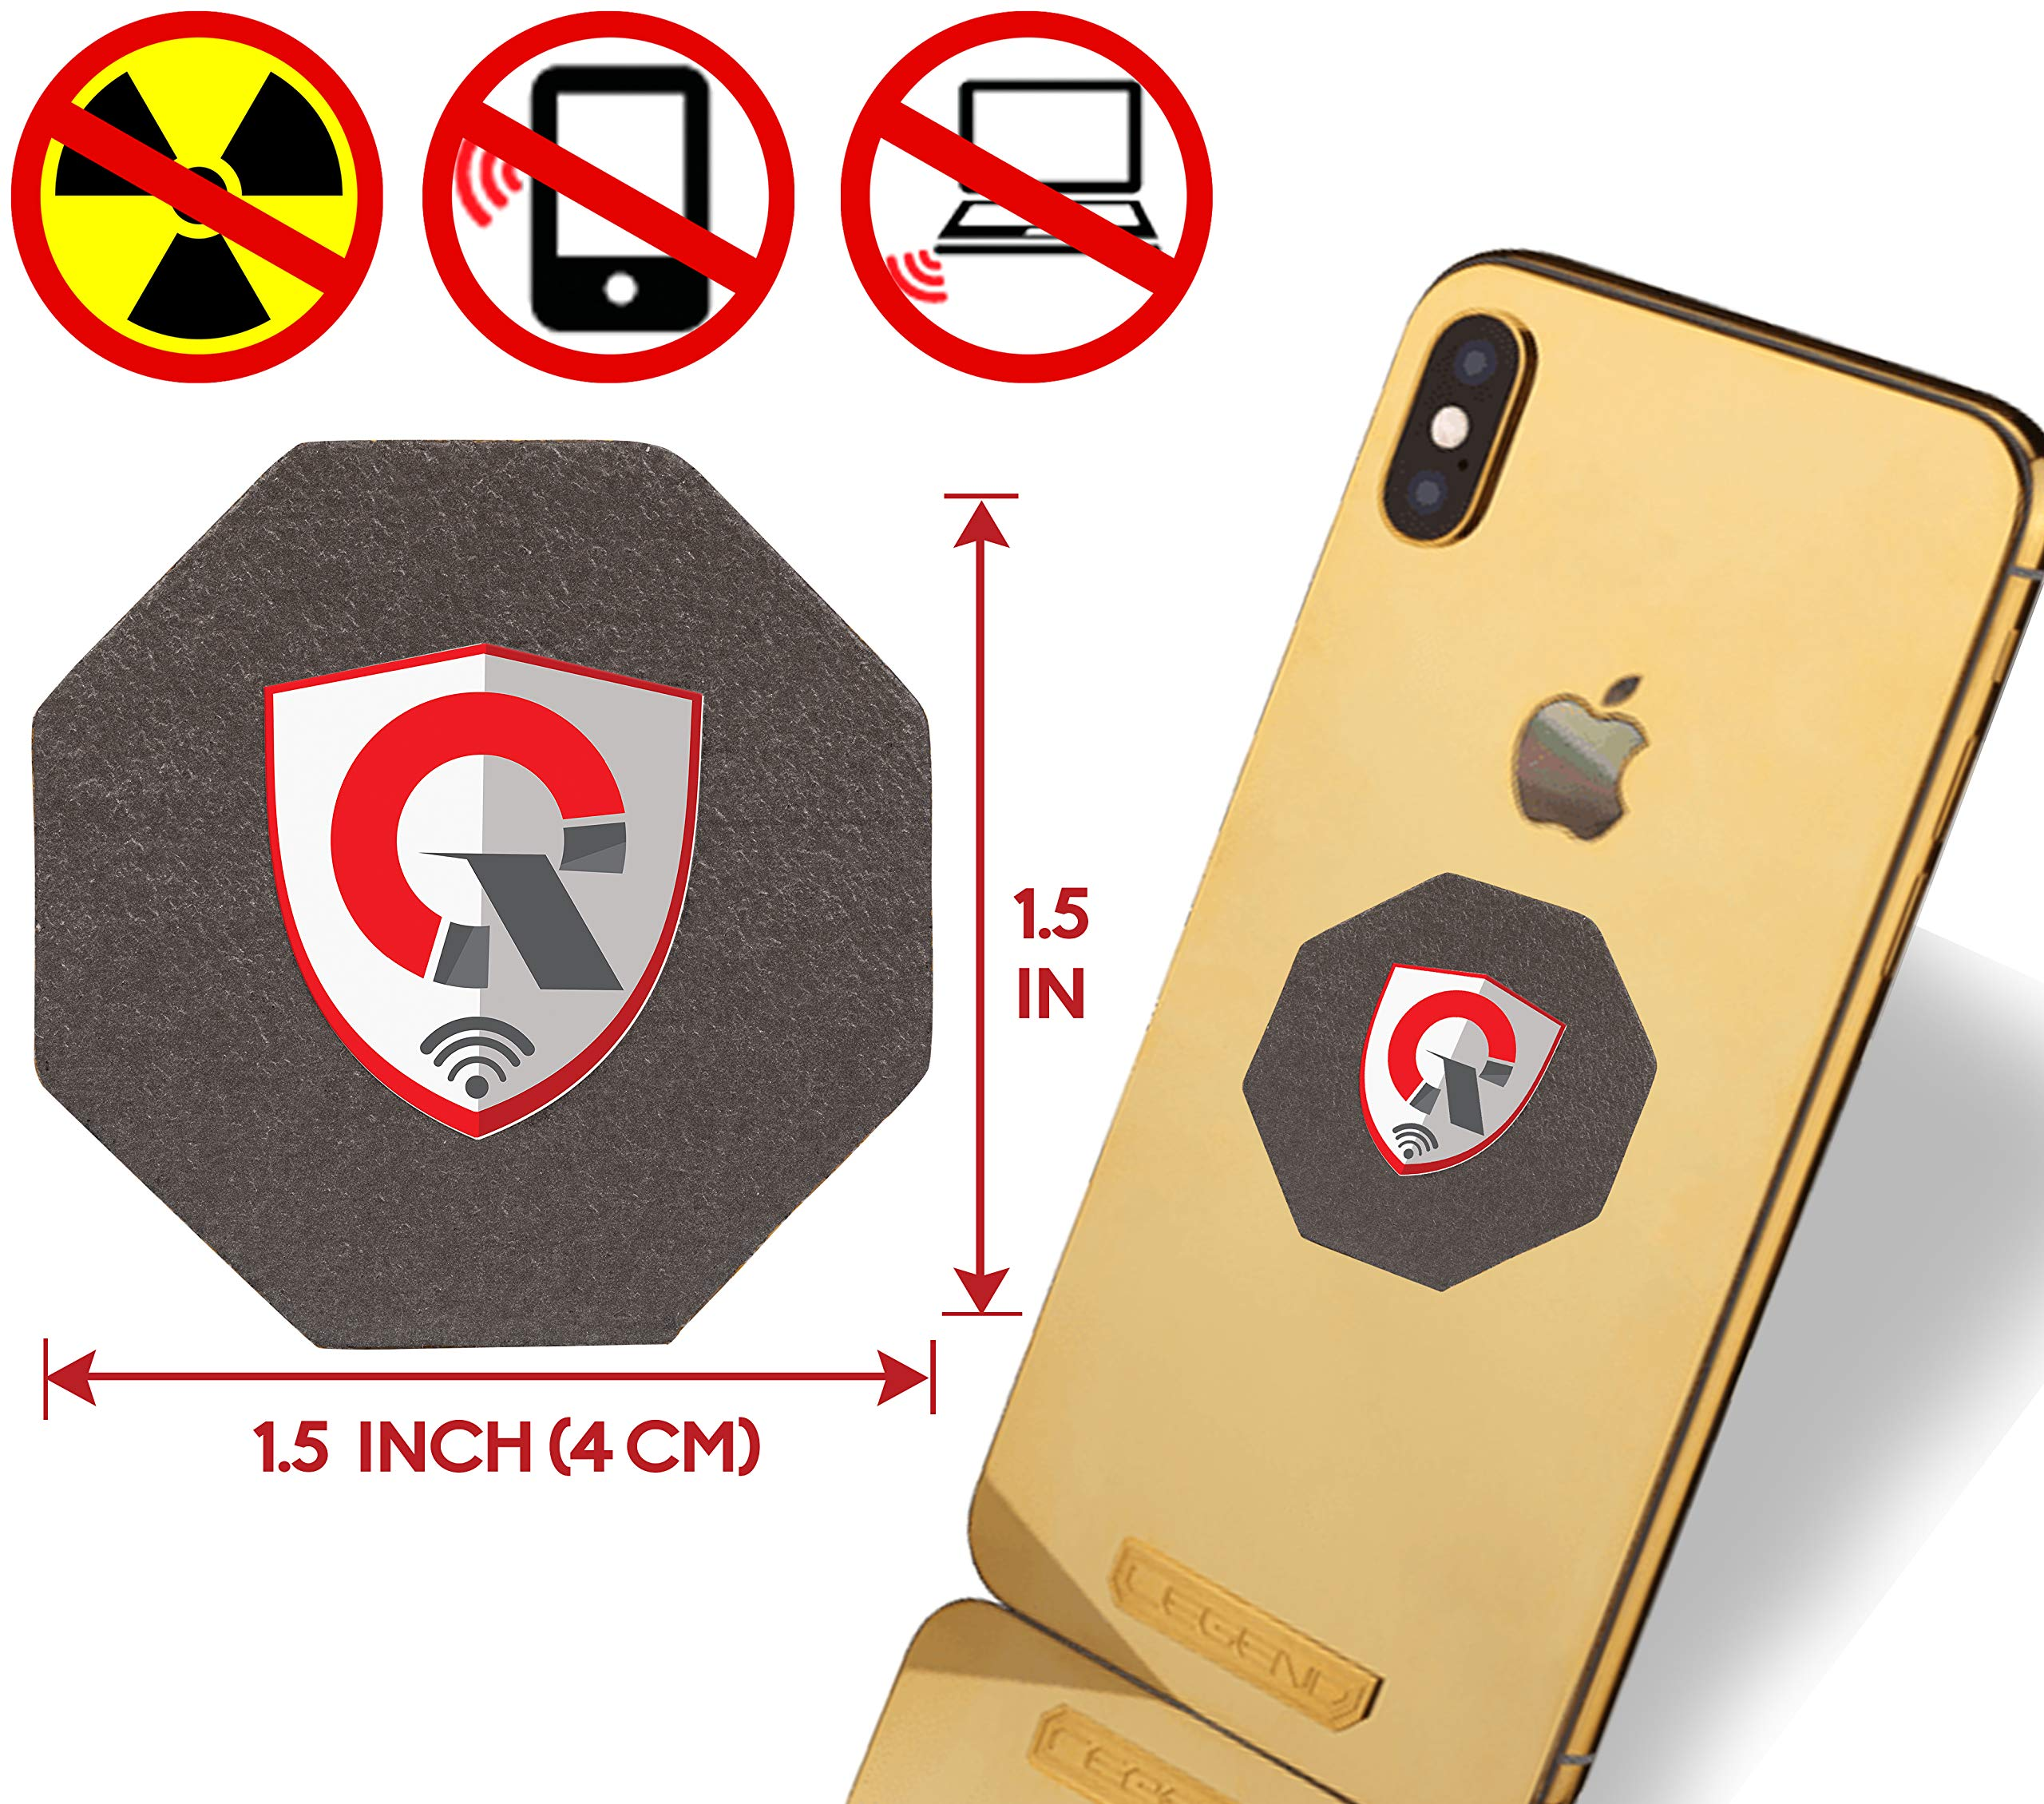 Best EMF Protection CELL PHONE : Radiation Protection Tesla Technology EMF Shield WiFi, Laptop-All Devices| Negative Ion Generator| Global AWARDS Anti Radiation Shield, EMF Blocker Neutralizer 1.5INCH